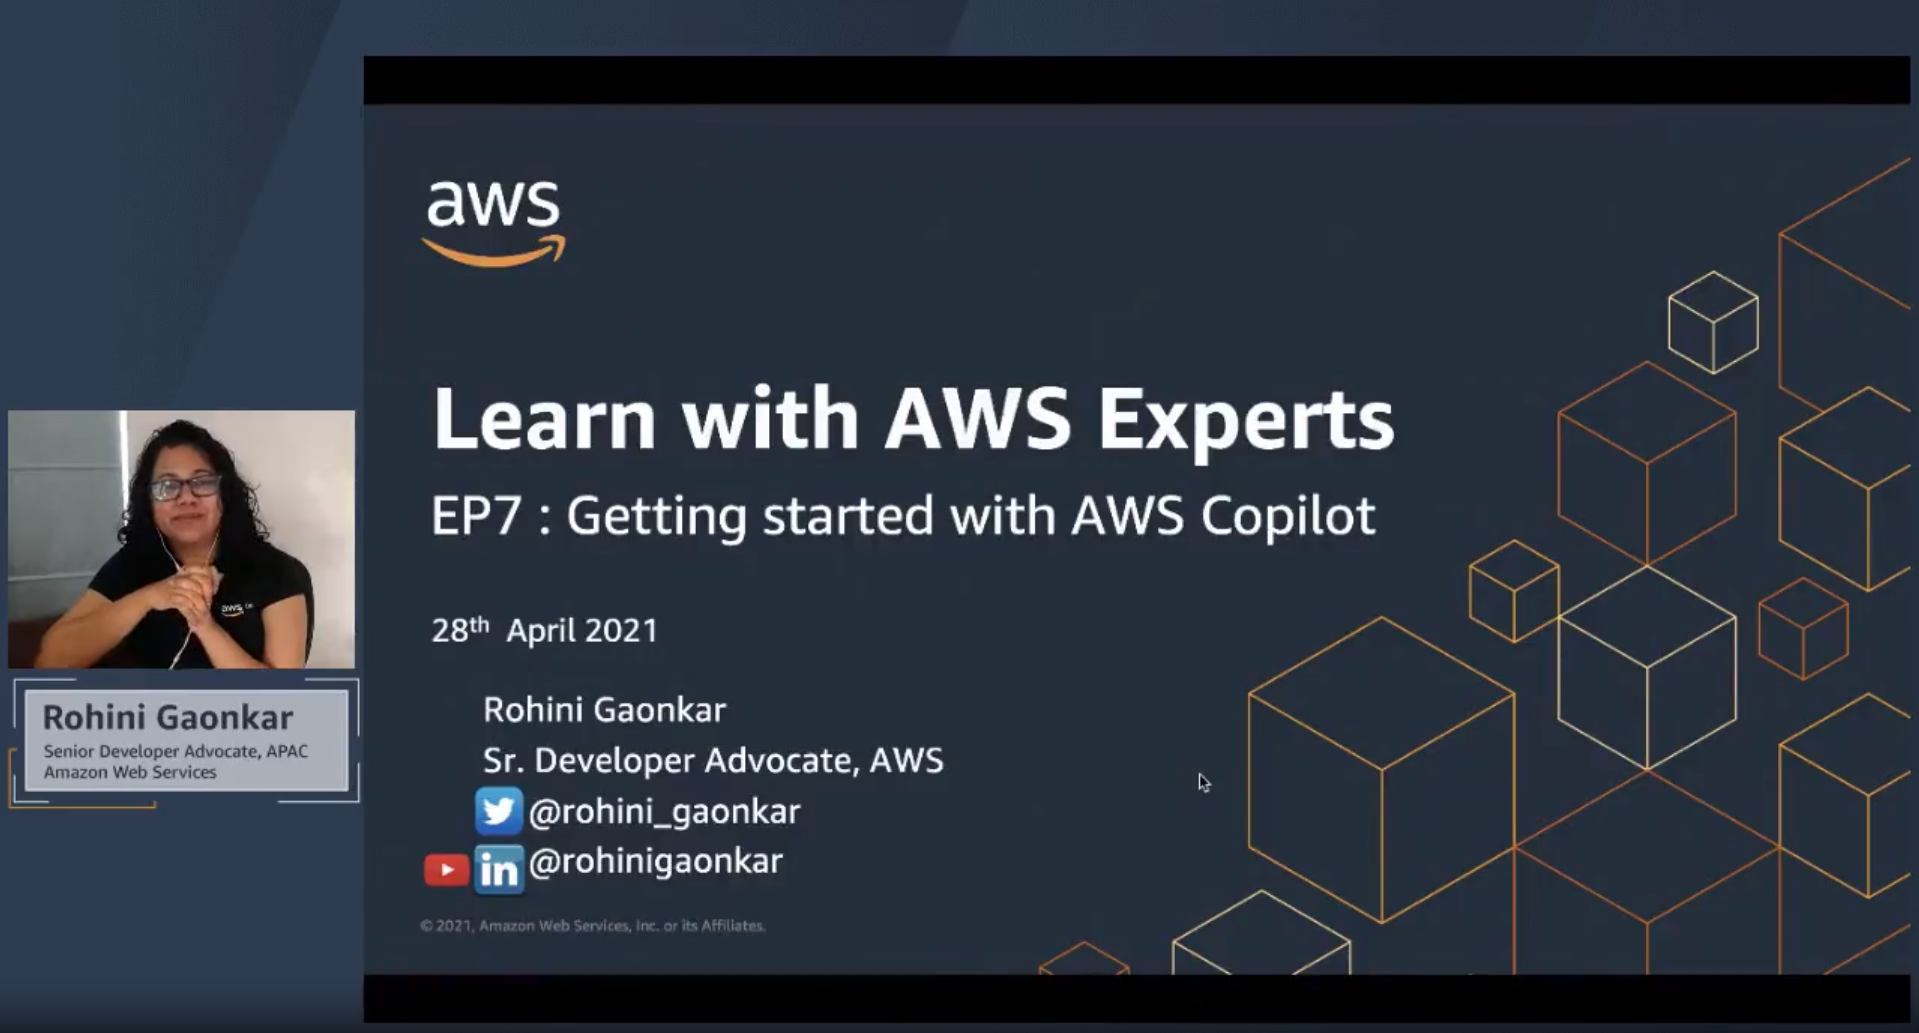 Learn with AWS Experts : EP7 Getting Started with AWS Copilot